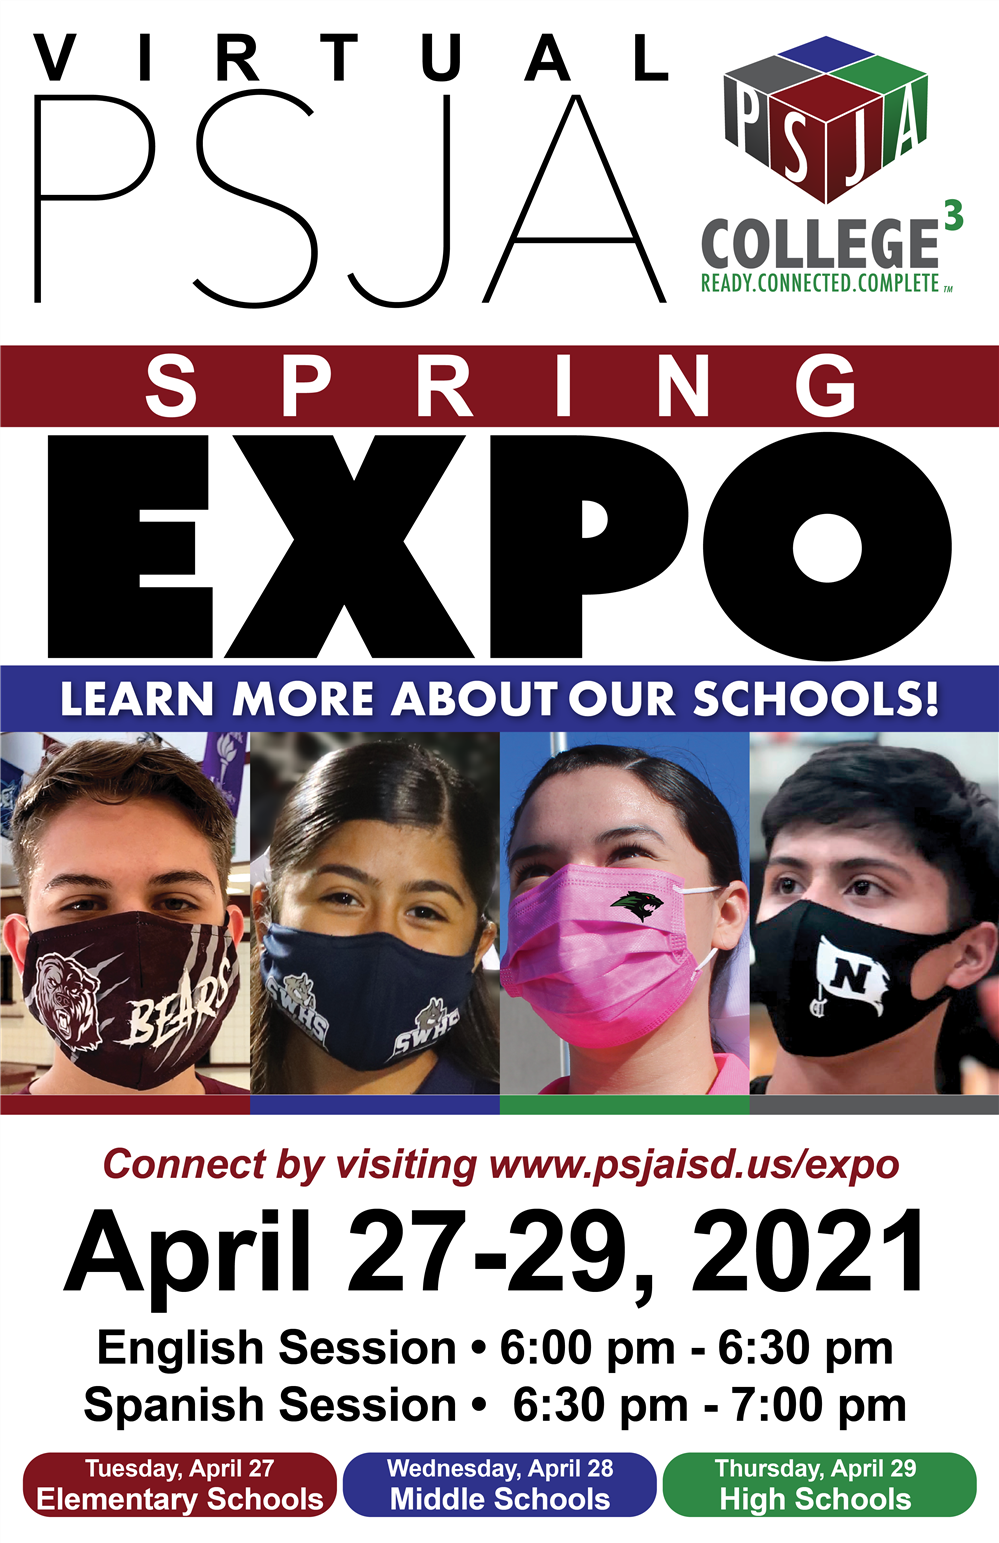 2021 PSJA Spring Virtual EXPO is happening on April 27 - April 29 !